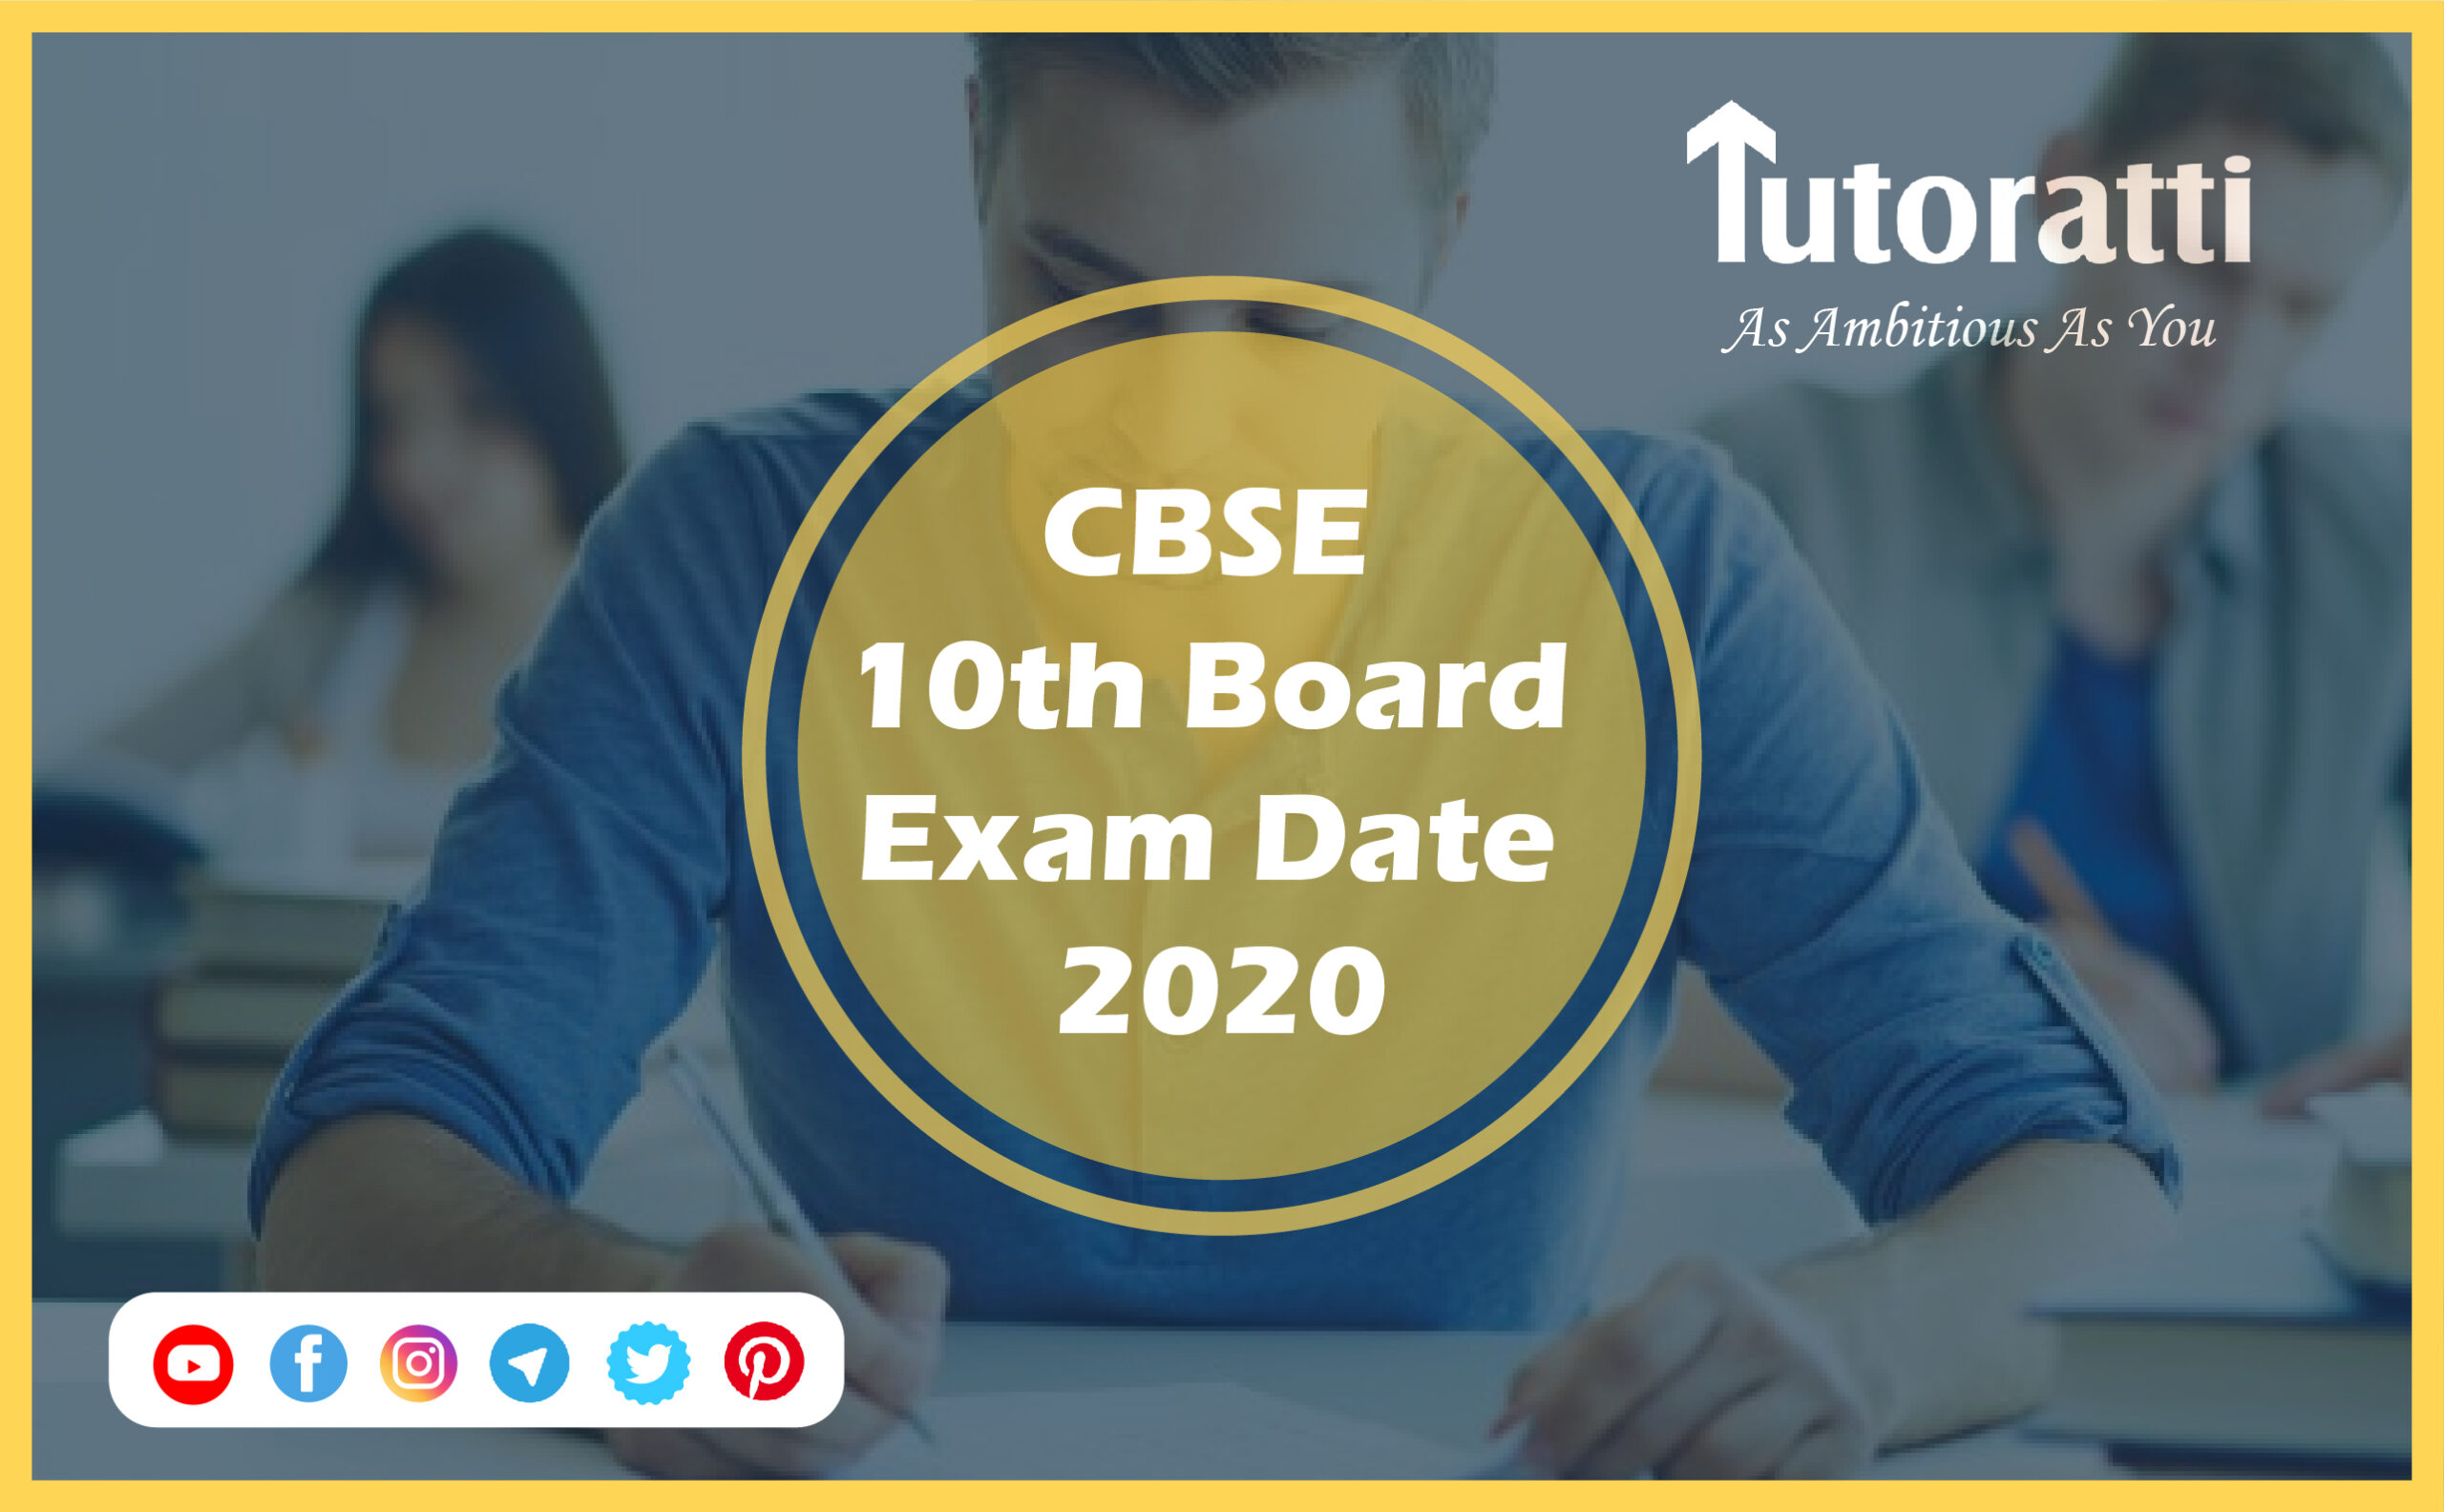 CBSE 10th Board Exam Date 2020